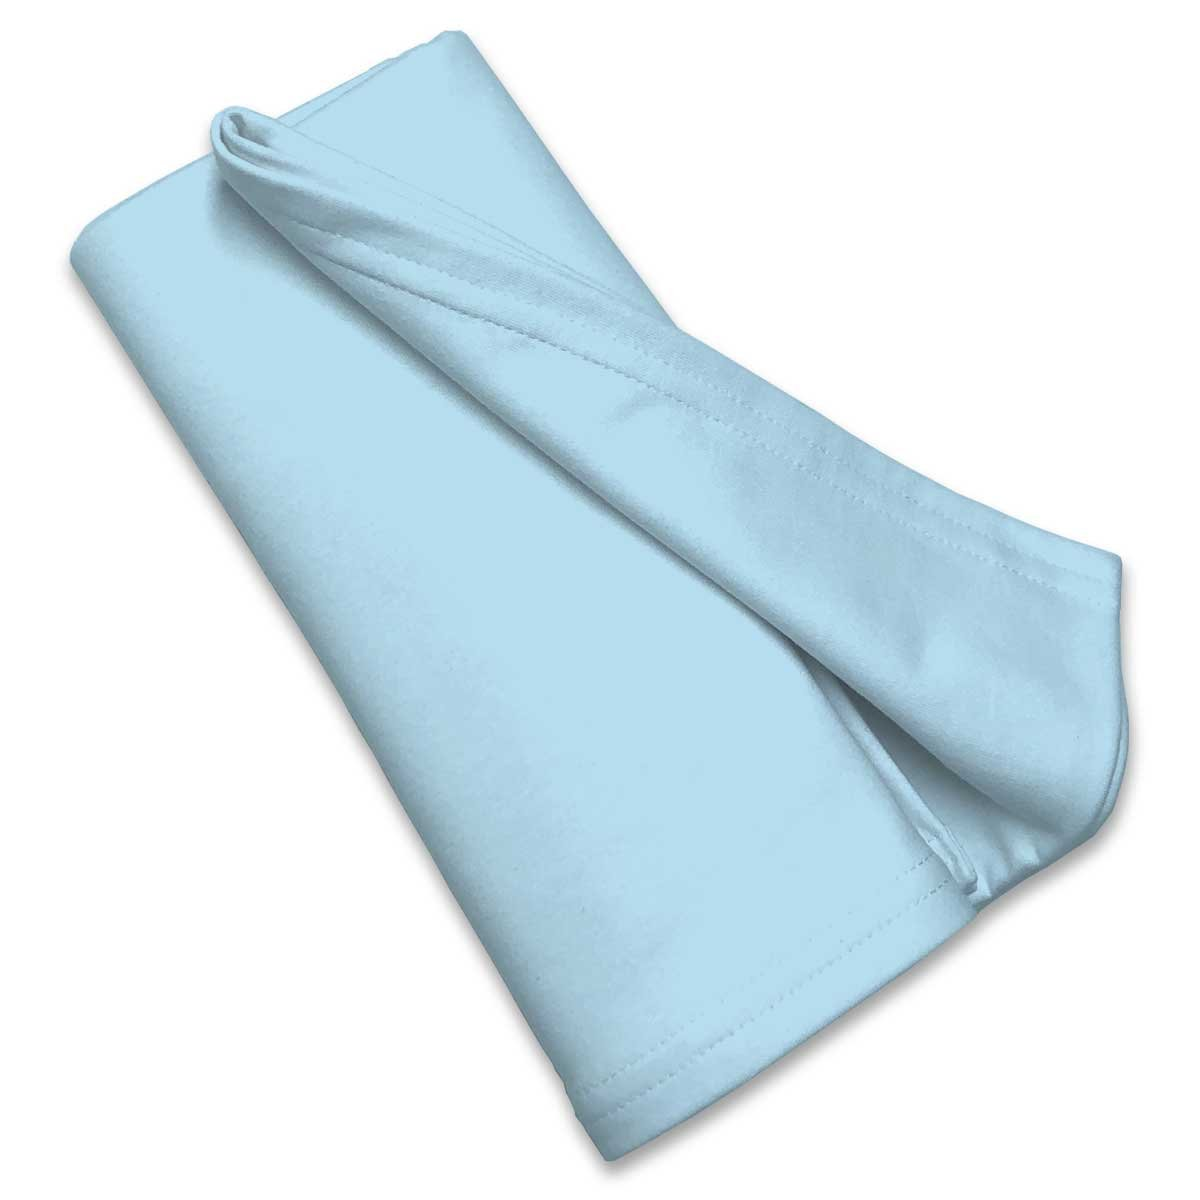 SheetWorld Flannel Receiving Blanket 30 x 45, Aqua Flannel, Made in USA by SHEETWORLD.COM